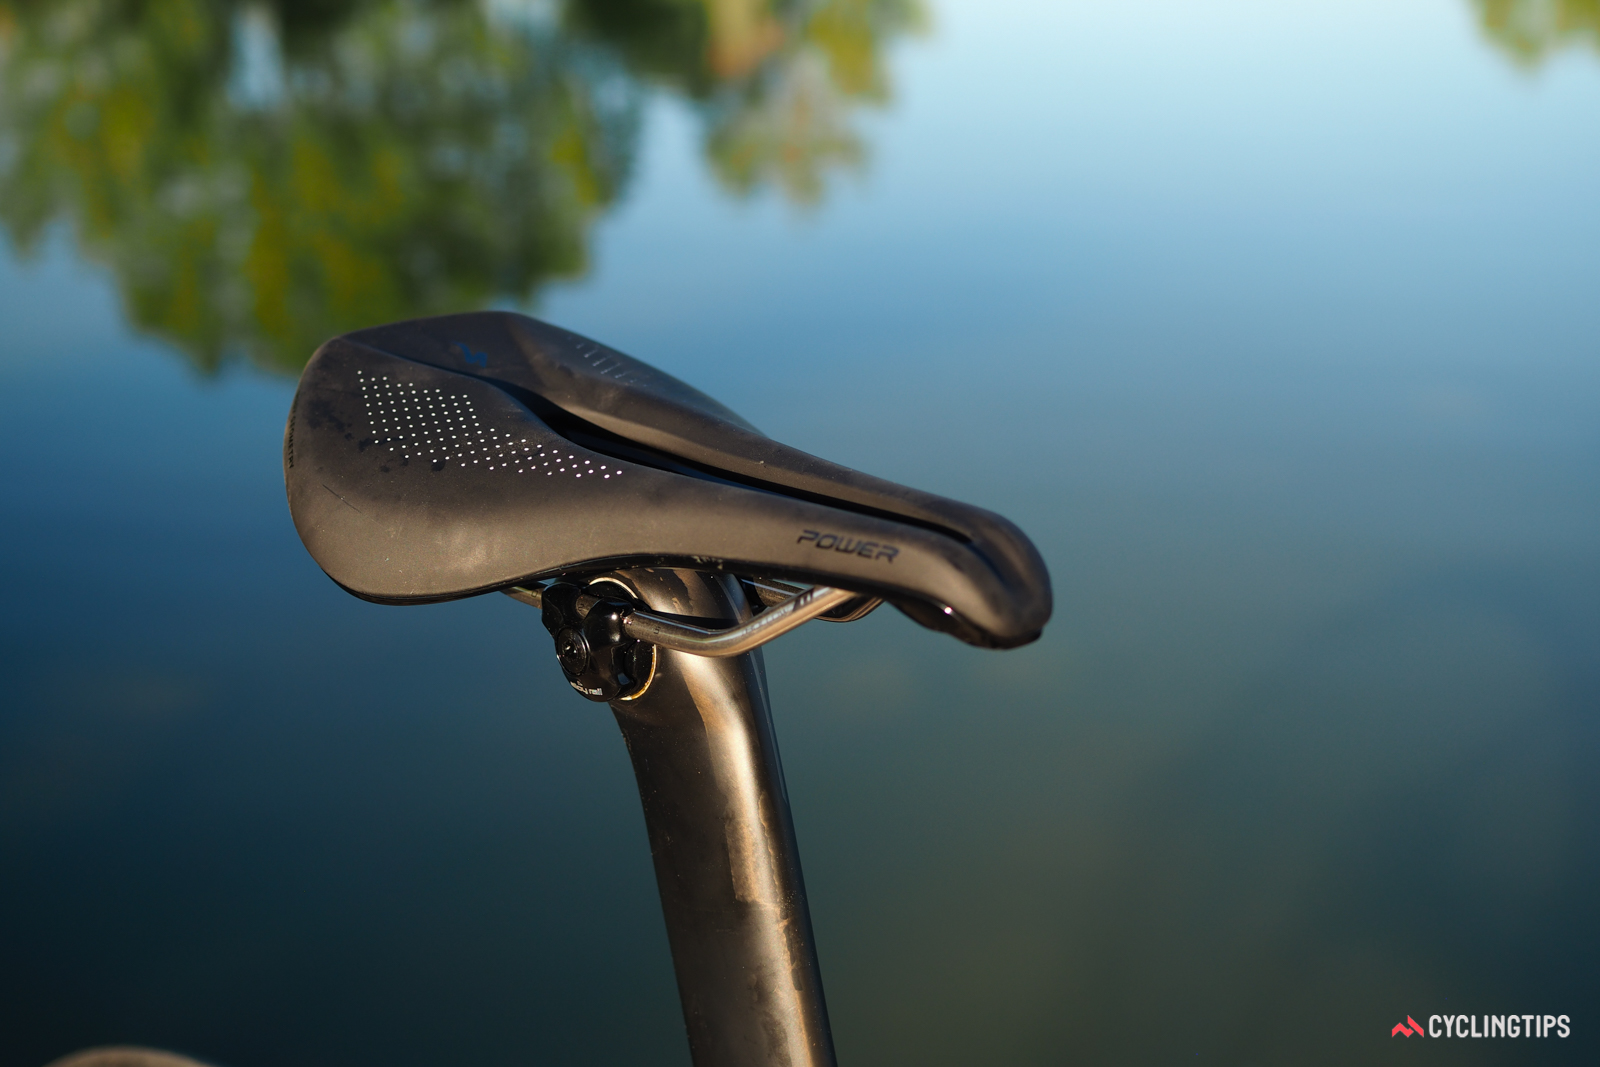 The Specialized Power saddle design looks strange with its stubby nose but it works remarkably well.